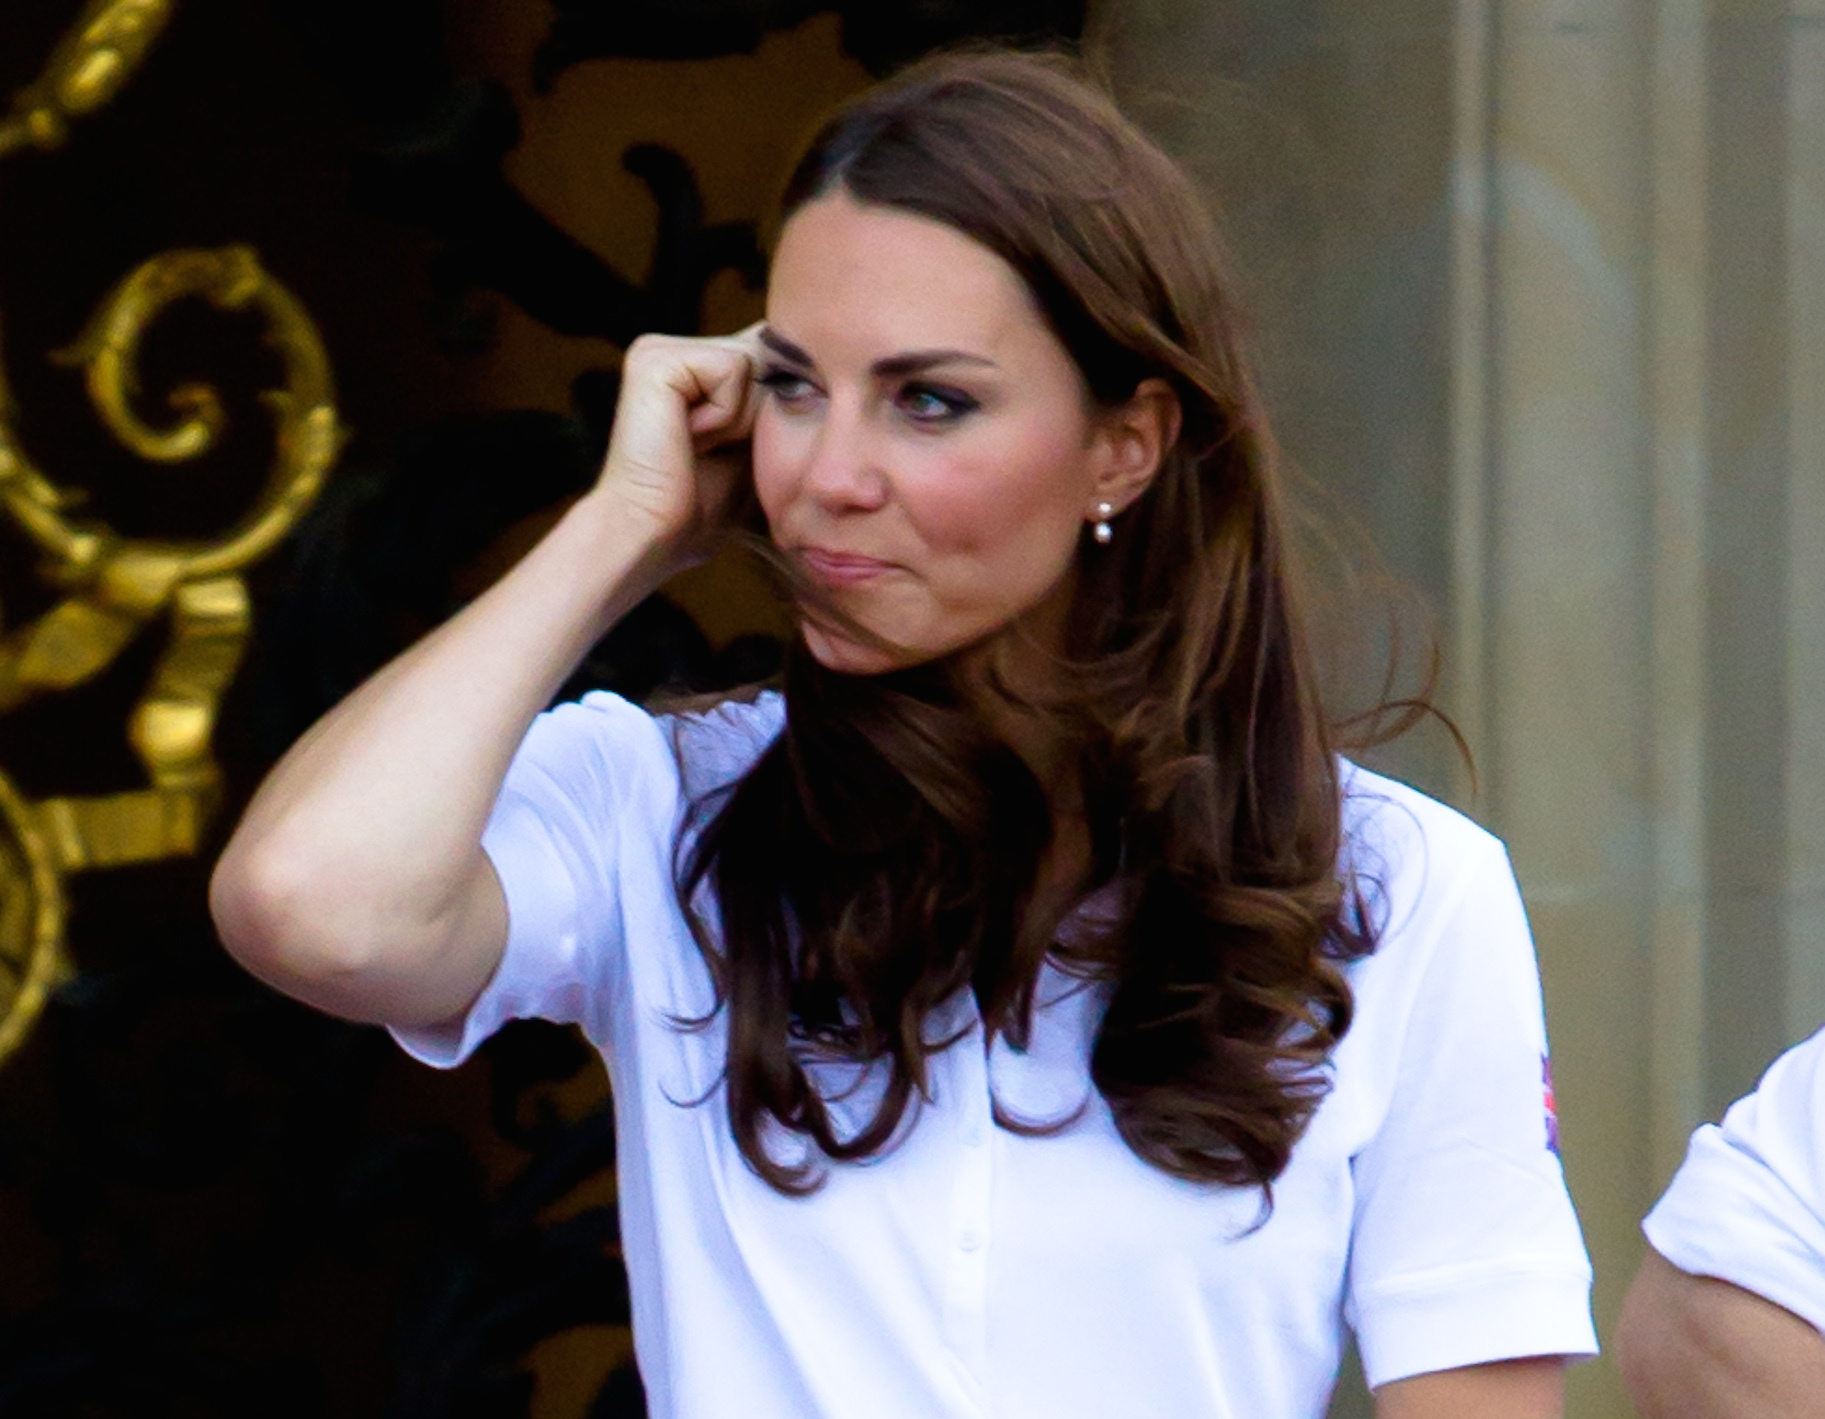 Here S The Kate Middleton Haircut Tutorial We Ve Been Waiting For Natureponics Llc